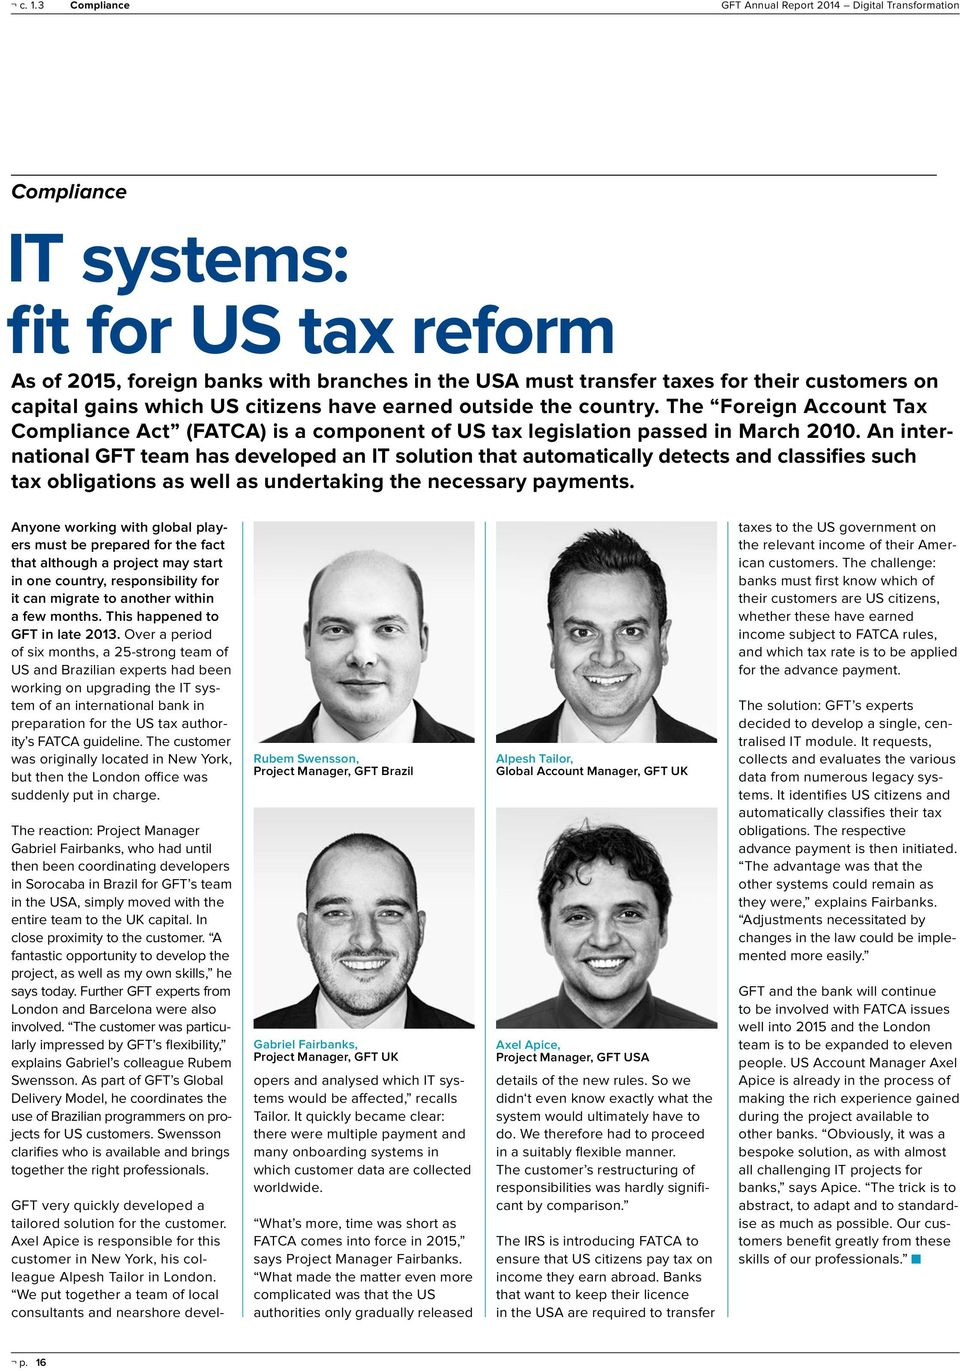 An international GFT team has developed an IT solution that automatically detects and classifies such tax obligations as well as undertaking the necessary payments.